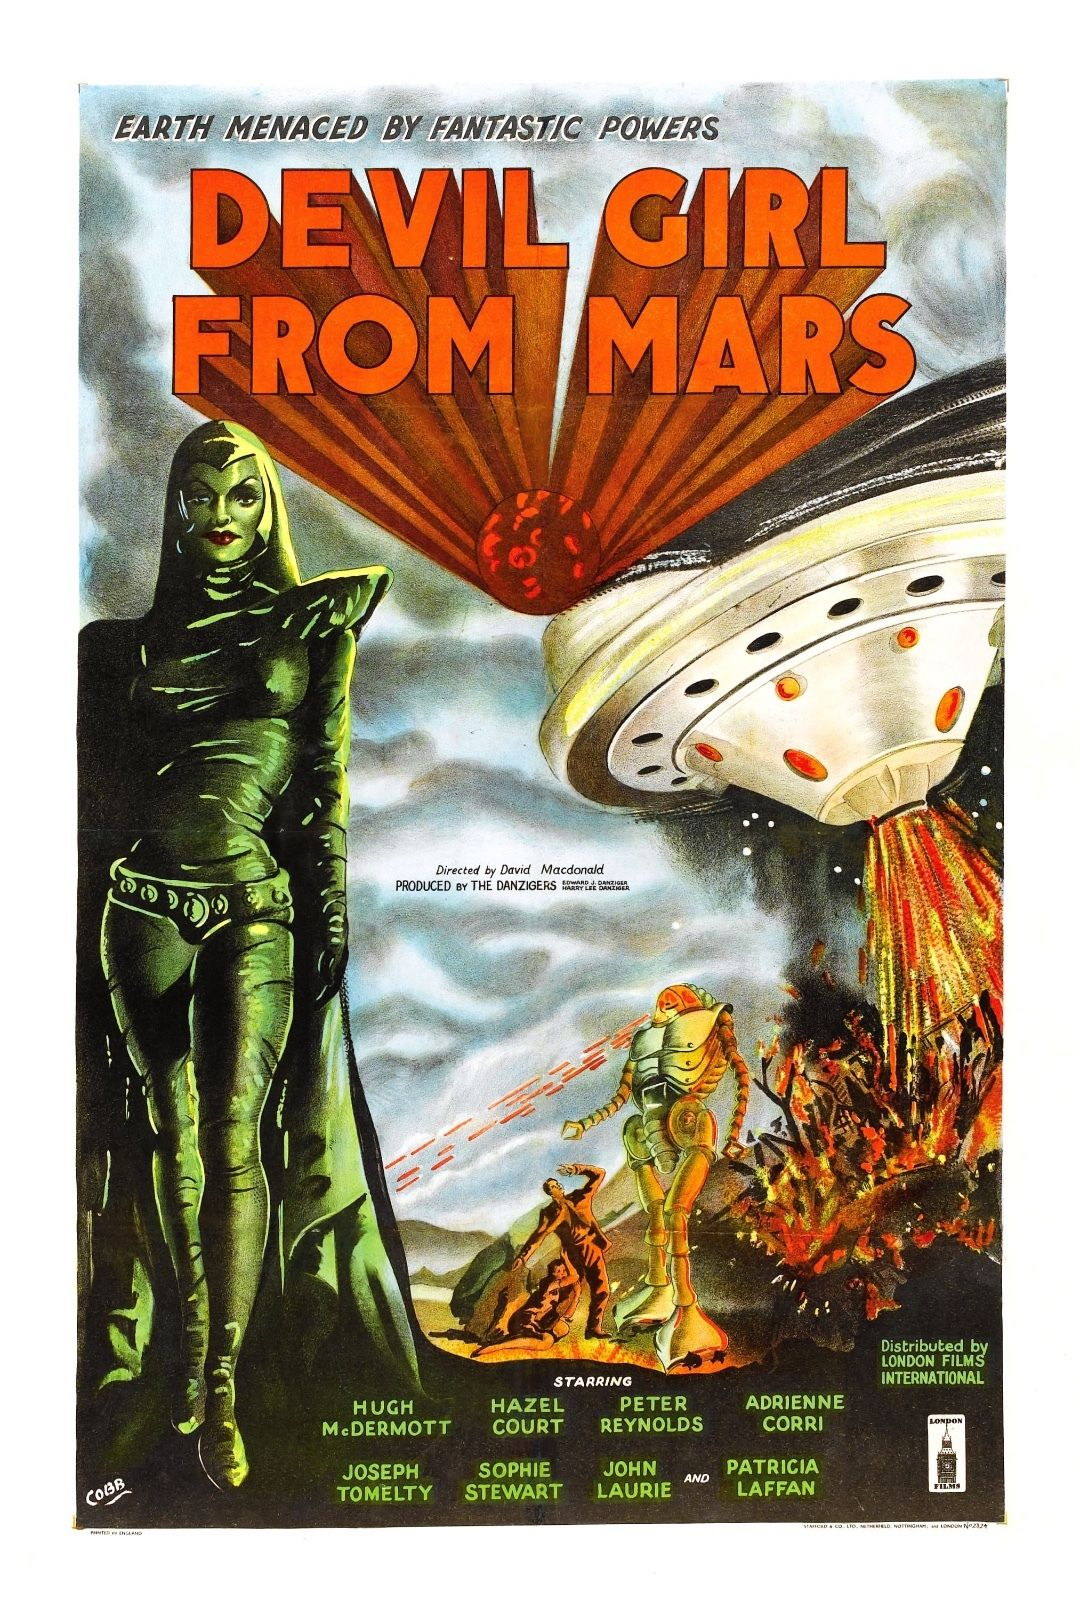 73167 Devil Girl from Mars Movie 1954 Cult Sci-Fi Decor Wall Print Poster